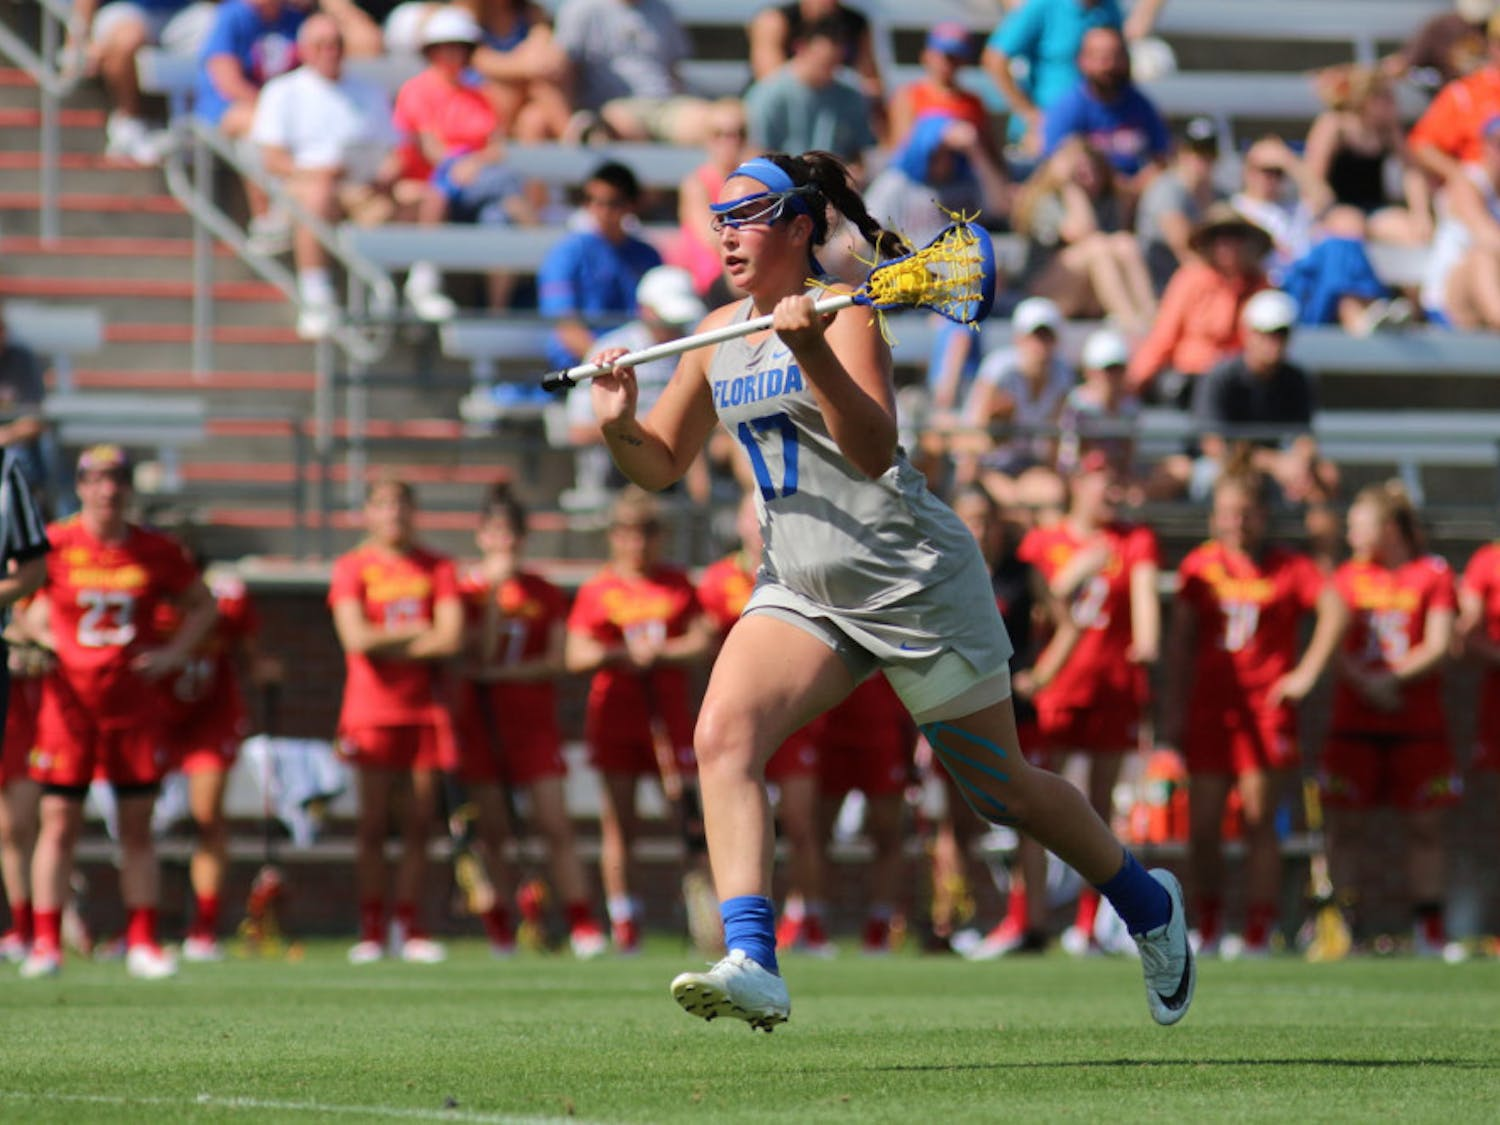 Freshman midfielder Shannon Kavanagh scored four goals and added three assists in Saturday's win over Marquette.